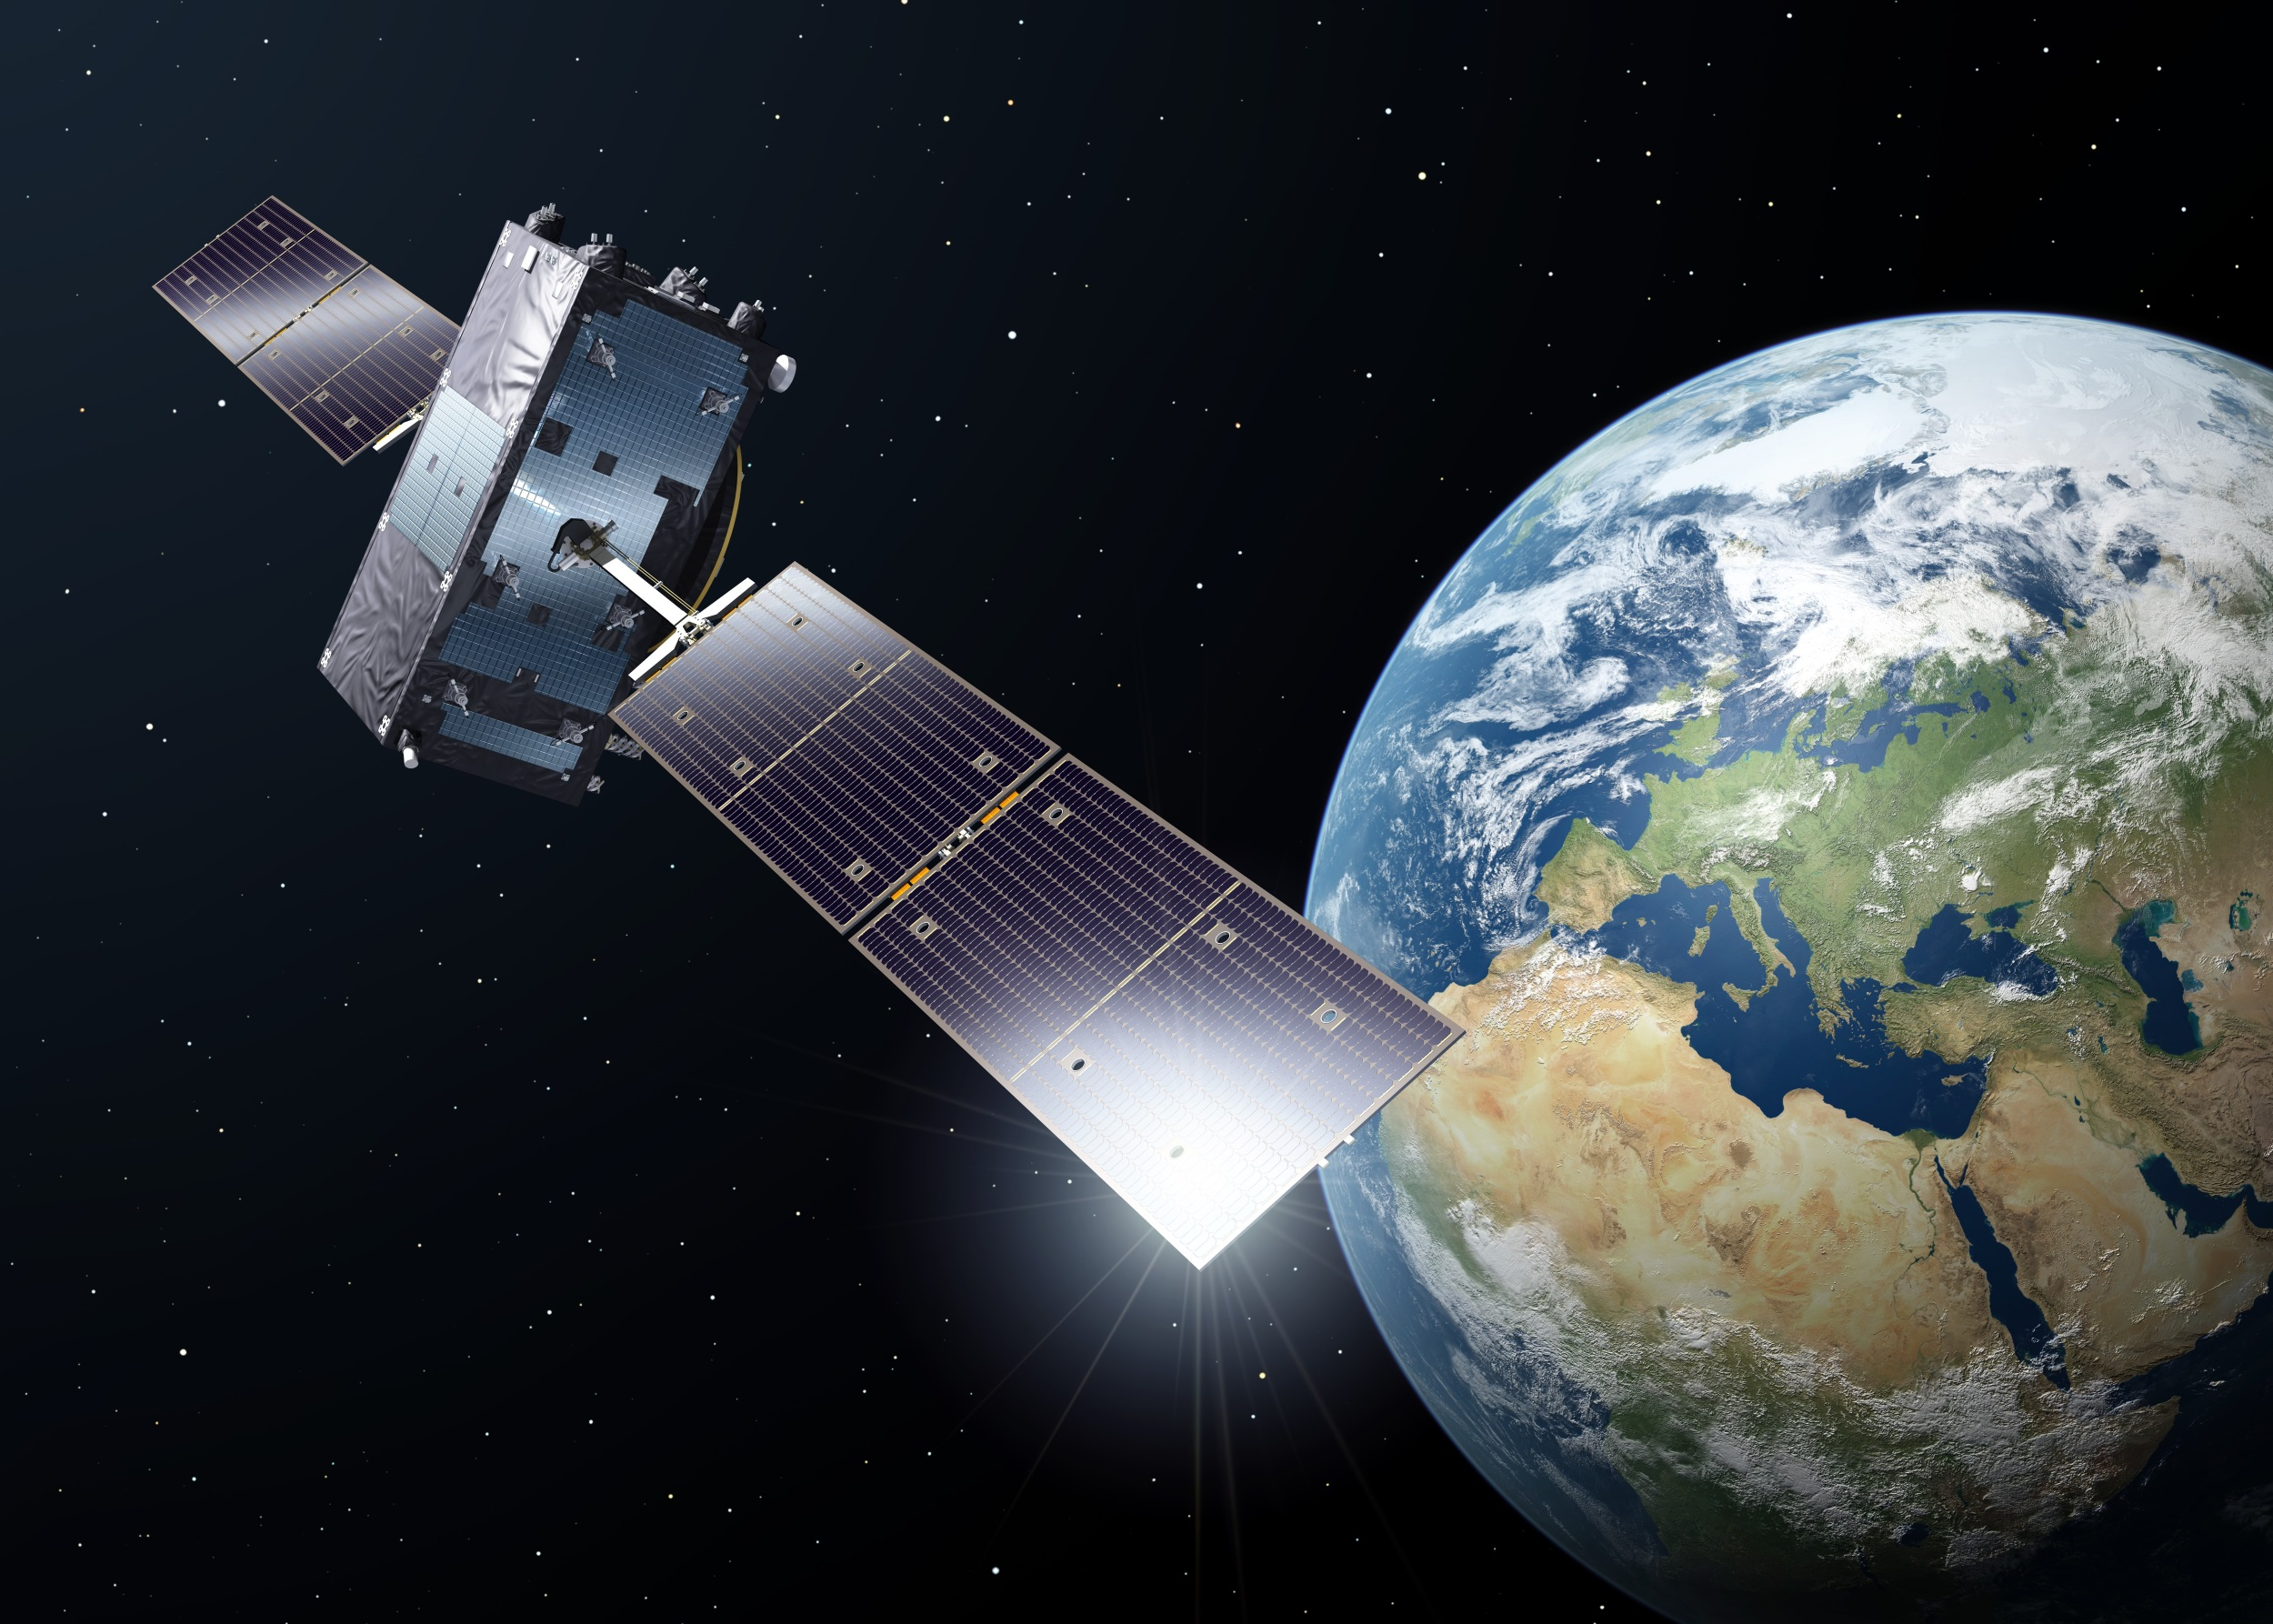 FCC approval of Europe's Galileo satellite signals may give your phone's GPS a boost Galileo satellite in orbit